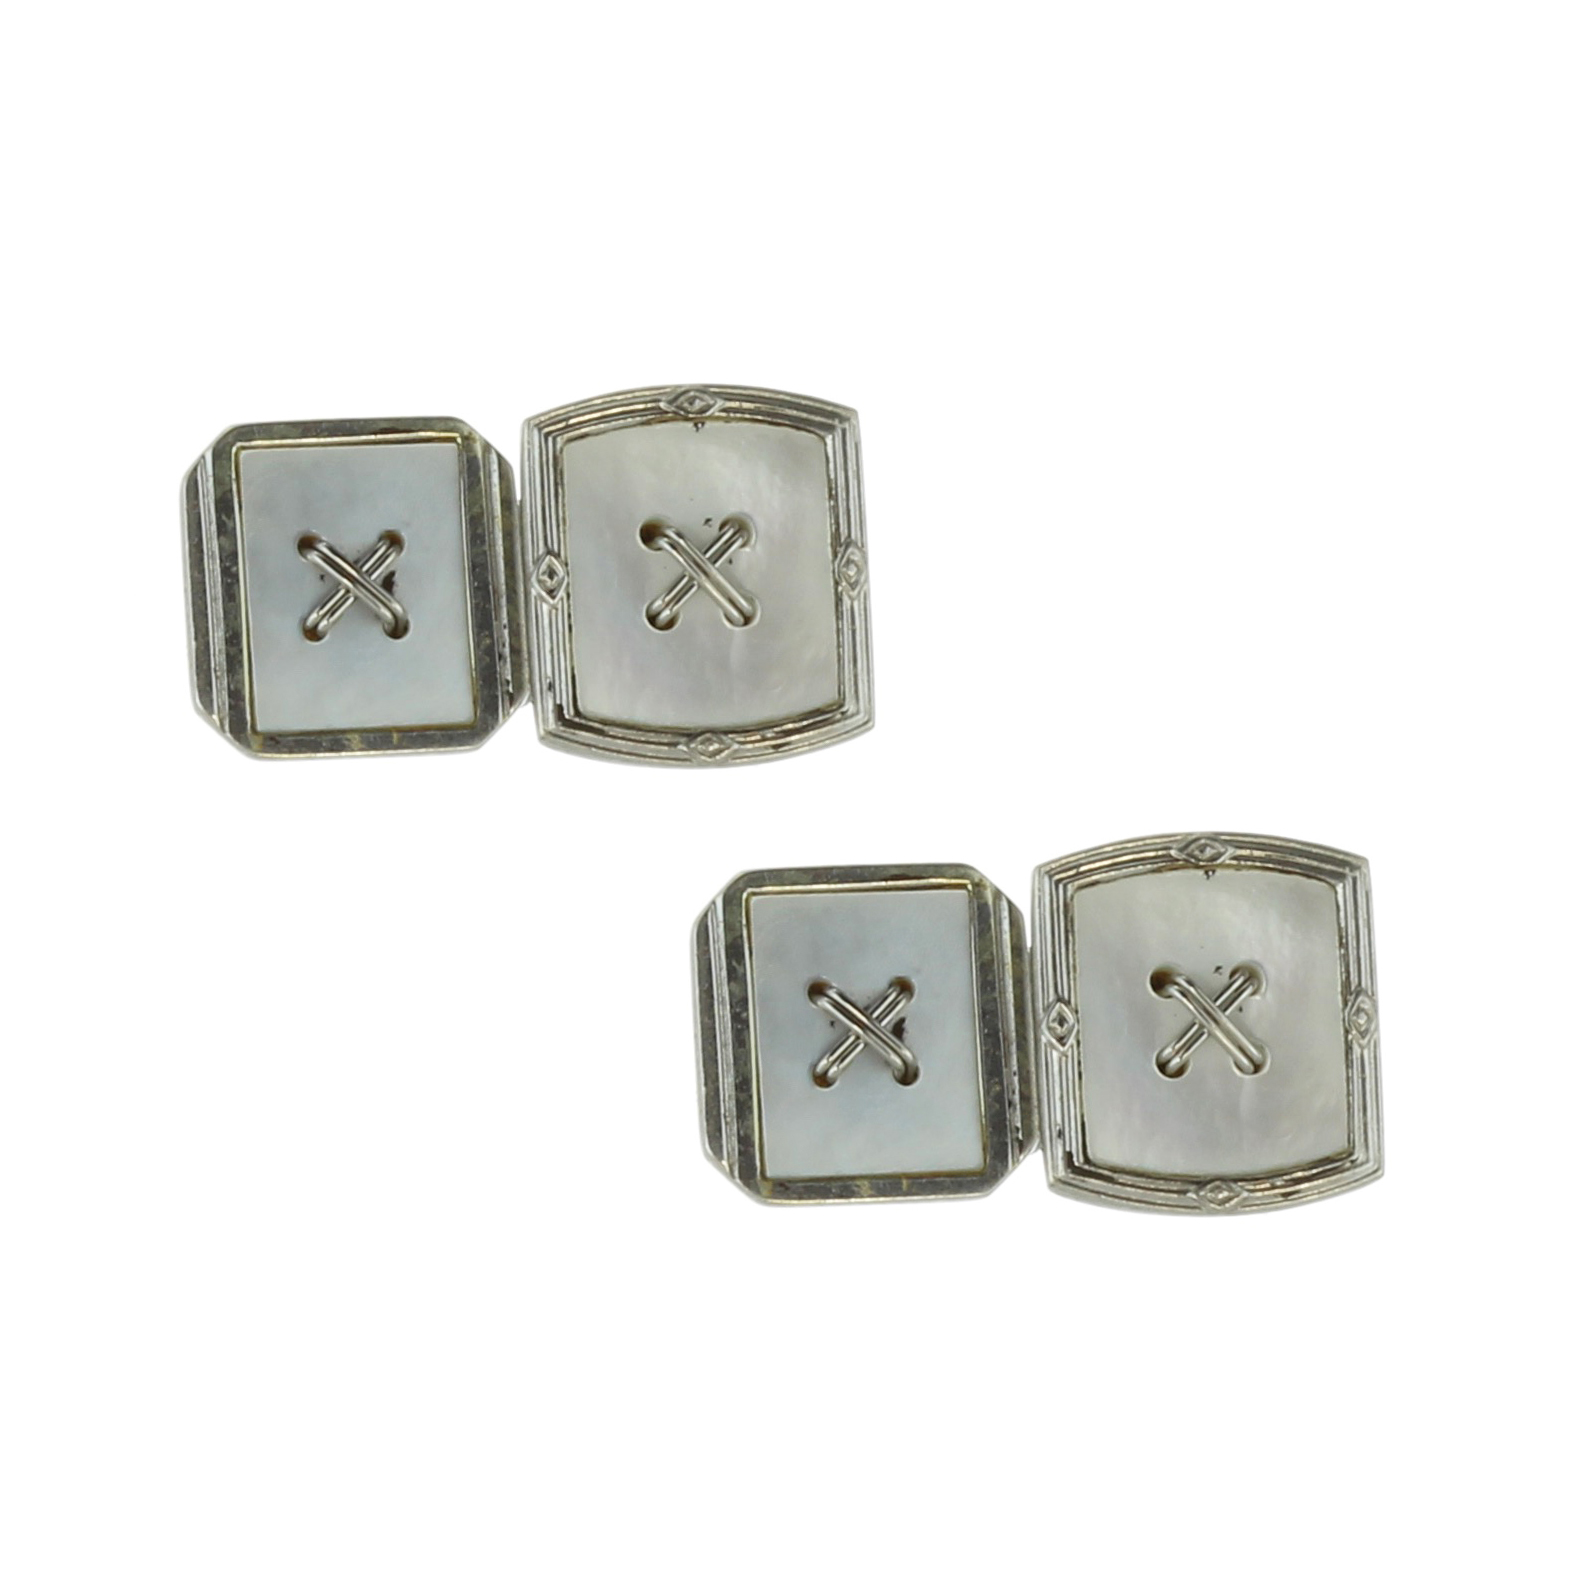 Los 36 - A pair of vintage mother of pearl cufflinks in 18ct white gold each designed as two links with